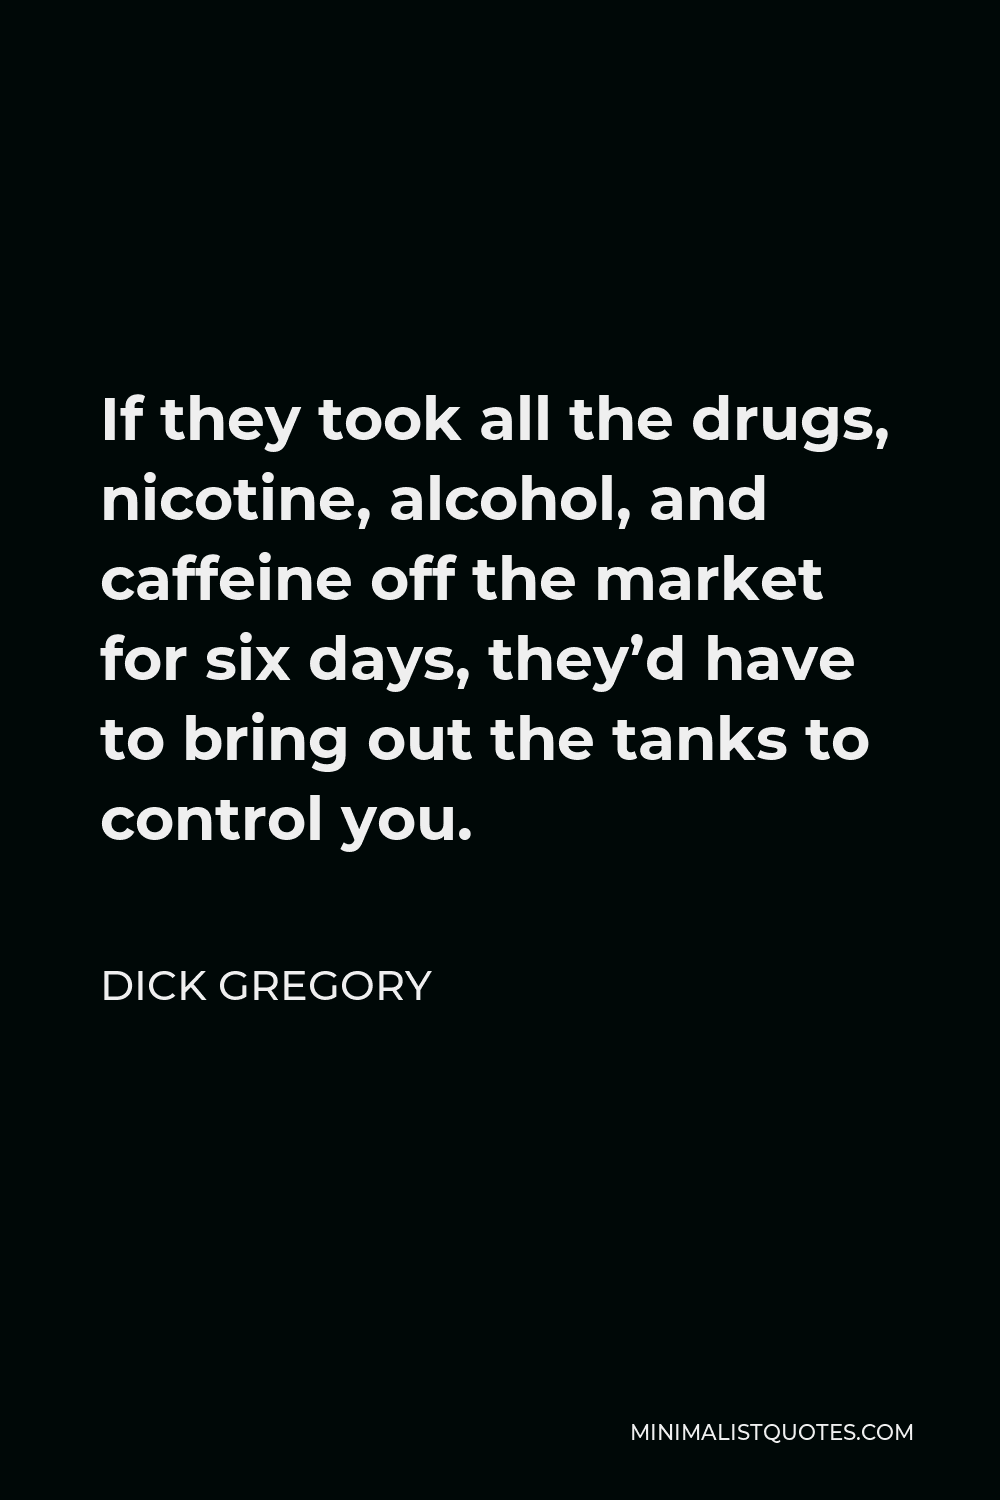 Dick Gregory Quote - If they took all the drugs, nicotine, alcohol, and caffeine off the market for six days, they'd have to bring out the tanks to control you.